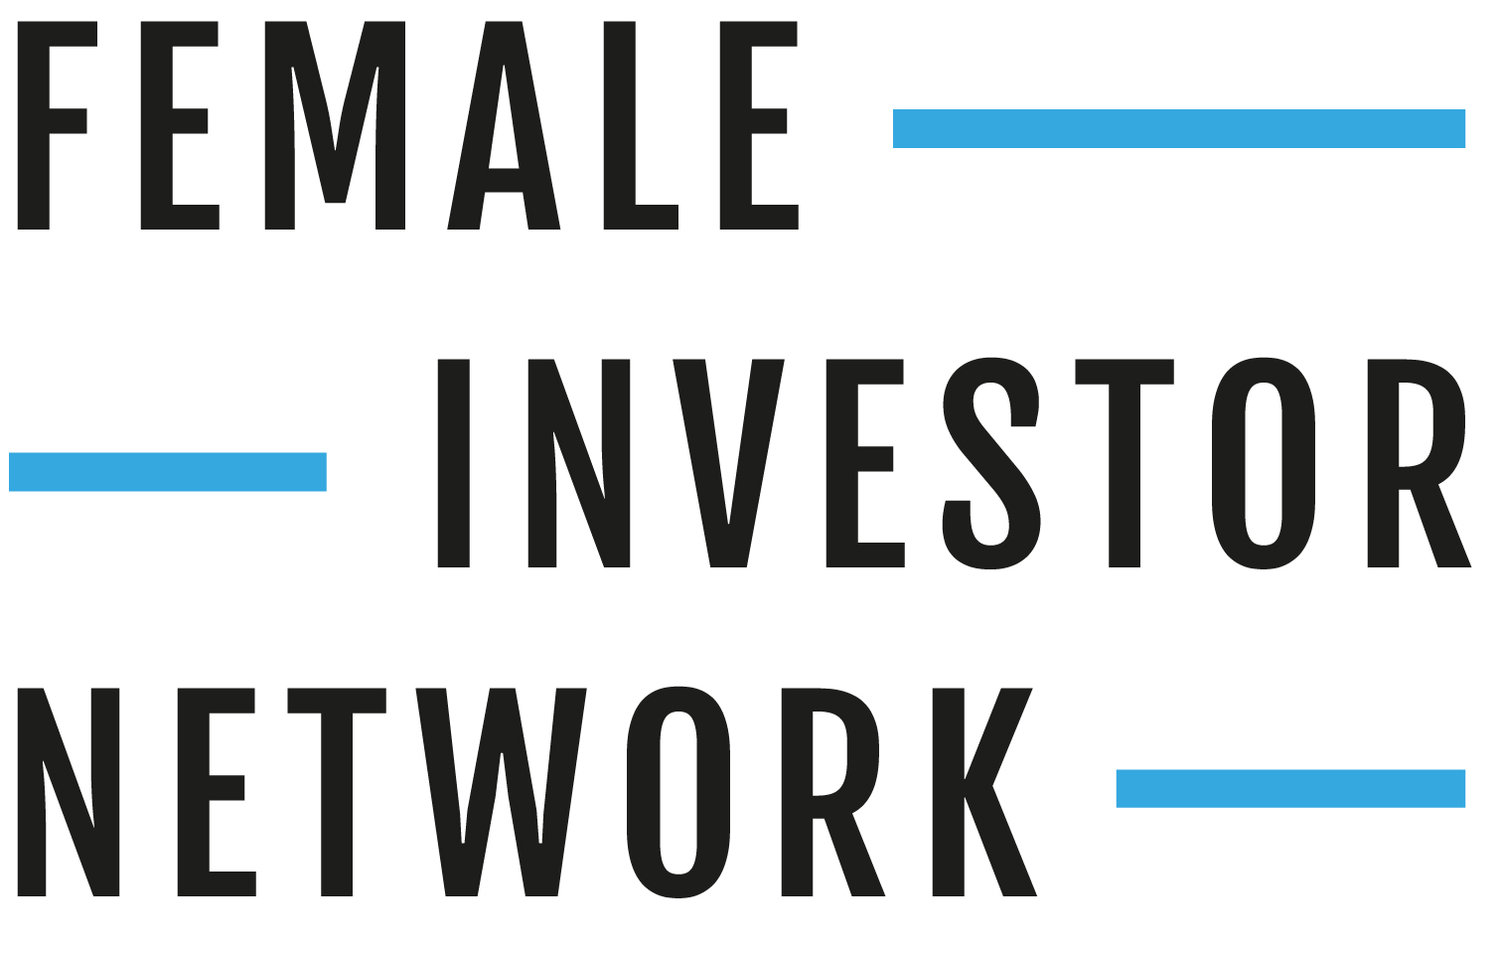 Female Investor Network